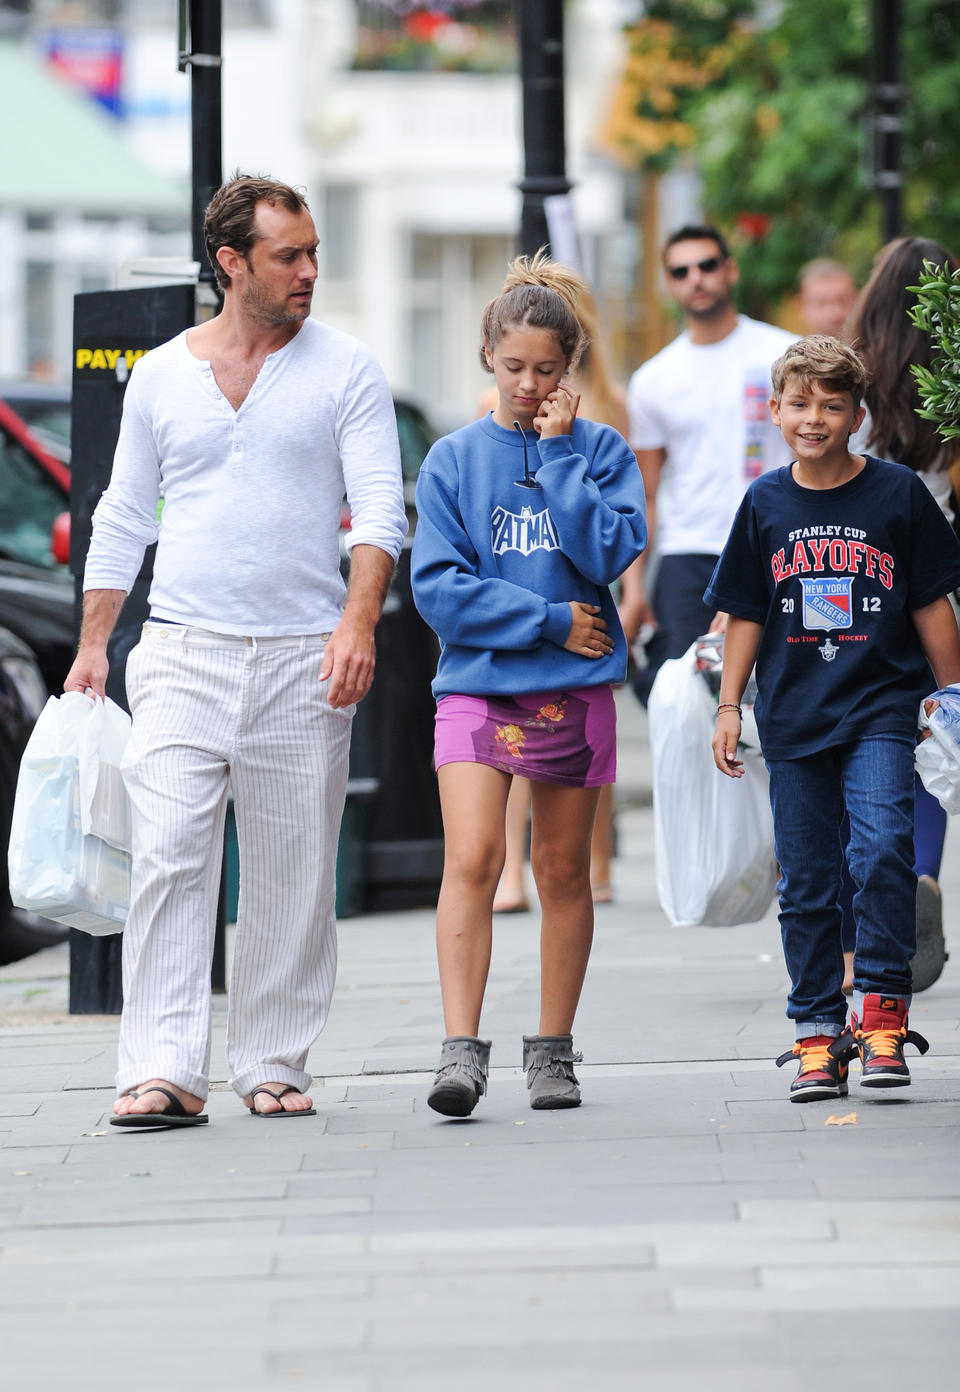 Jude Law Seen Shopping With His Children Today